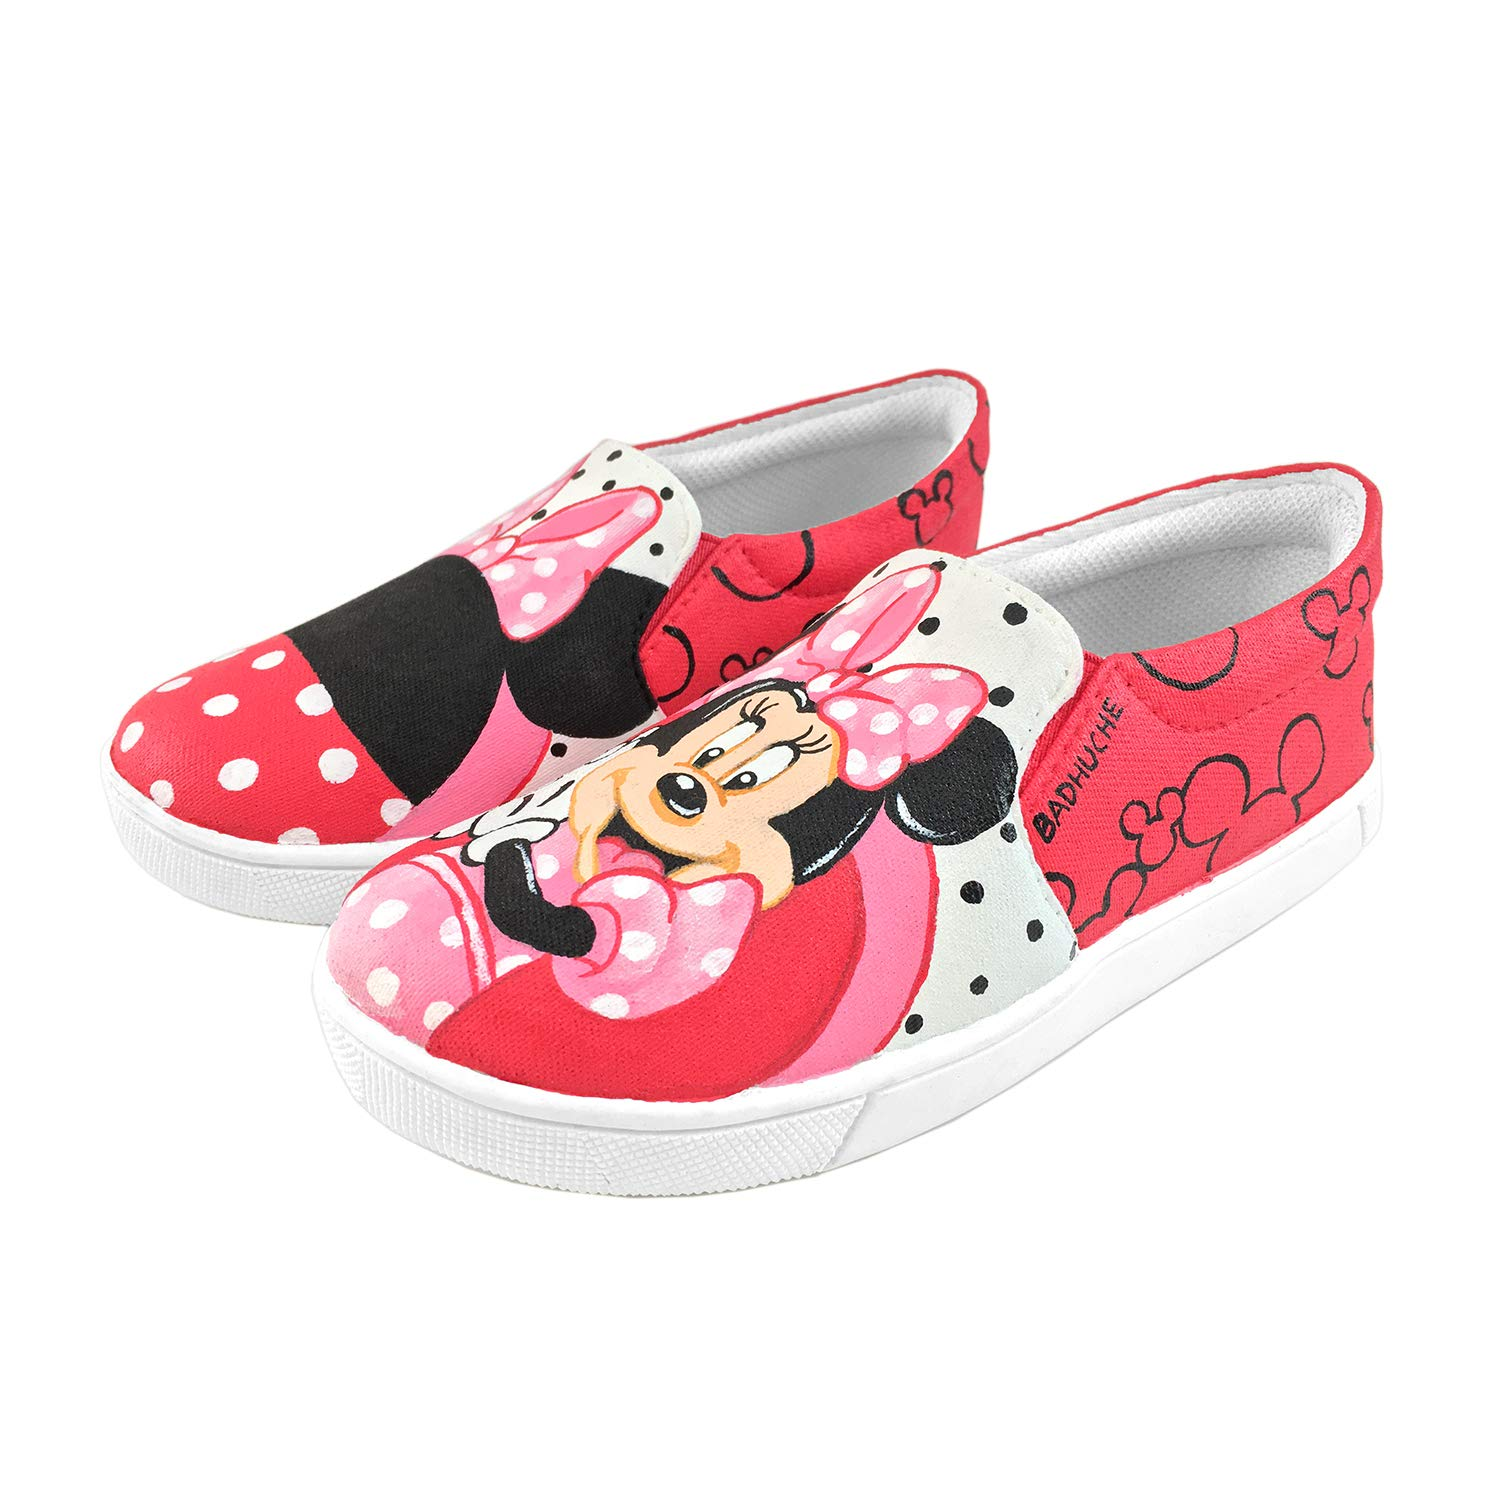 Girls-Pinky Mini Mickey Mouse Shoes